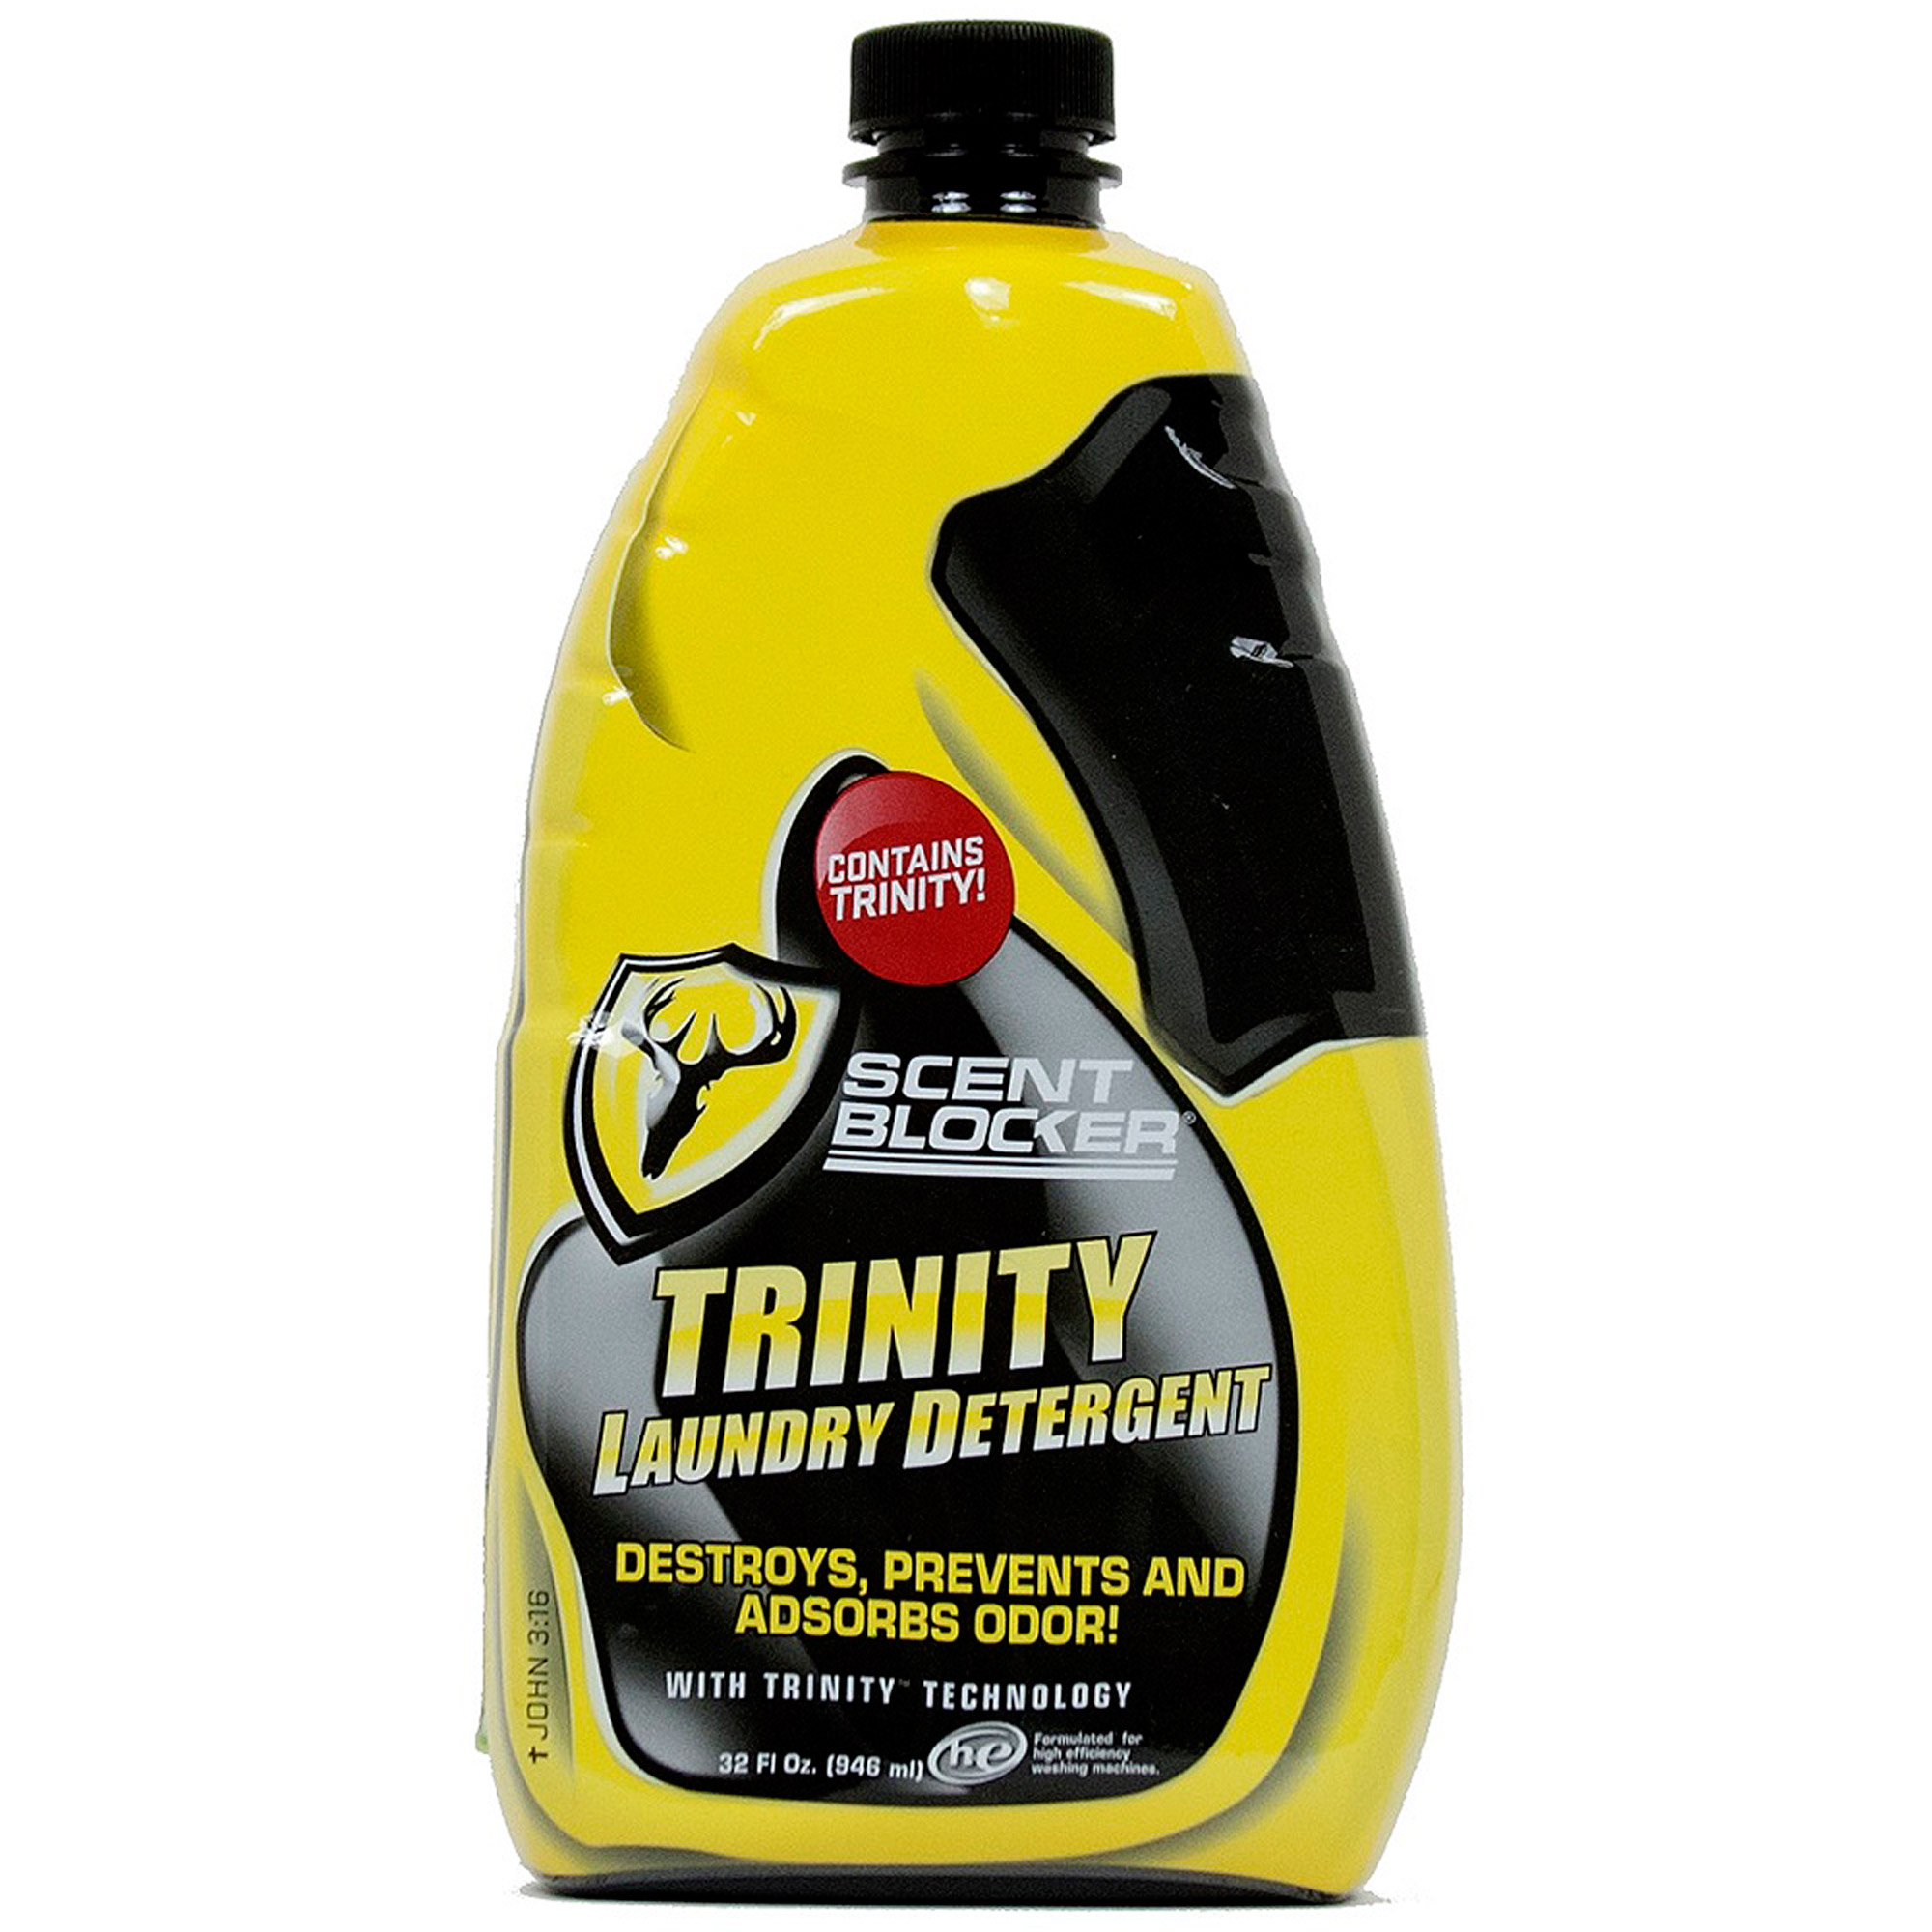 Scent Blocker Laundry Detergent with Trinity, 32 oz